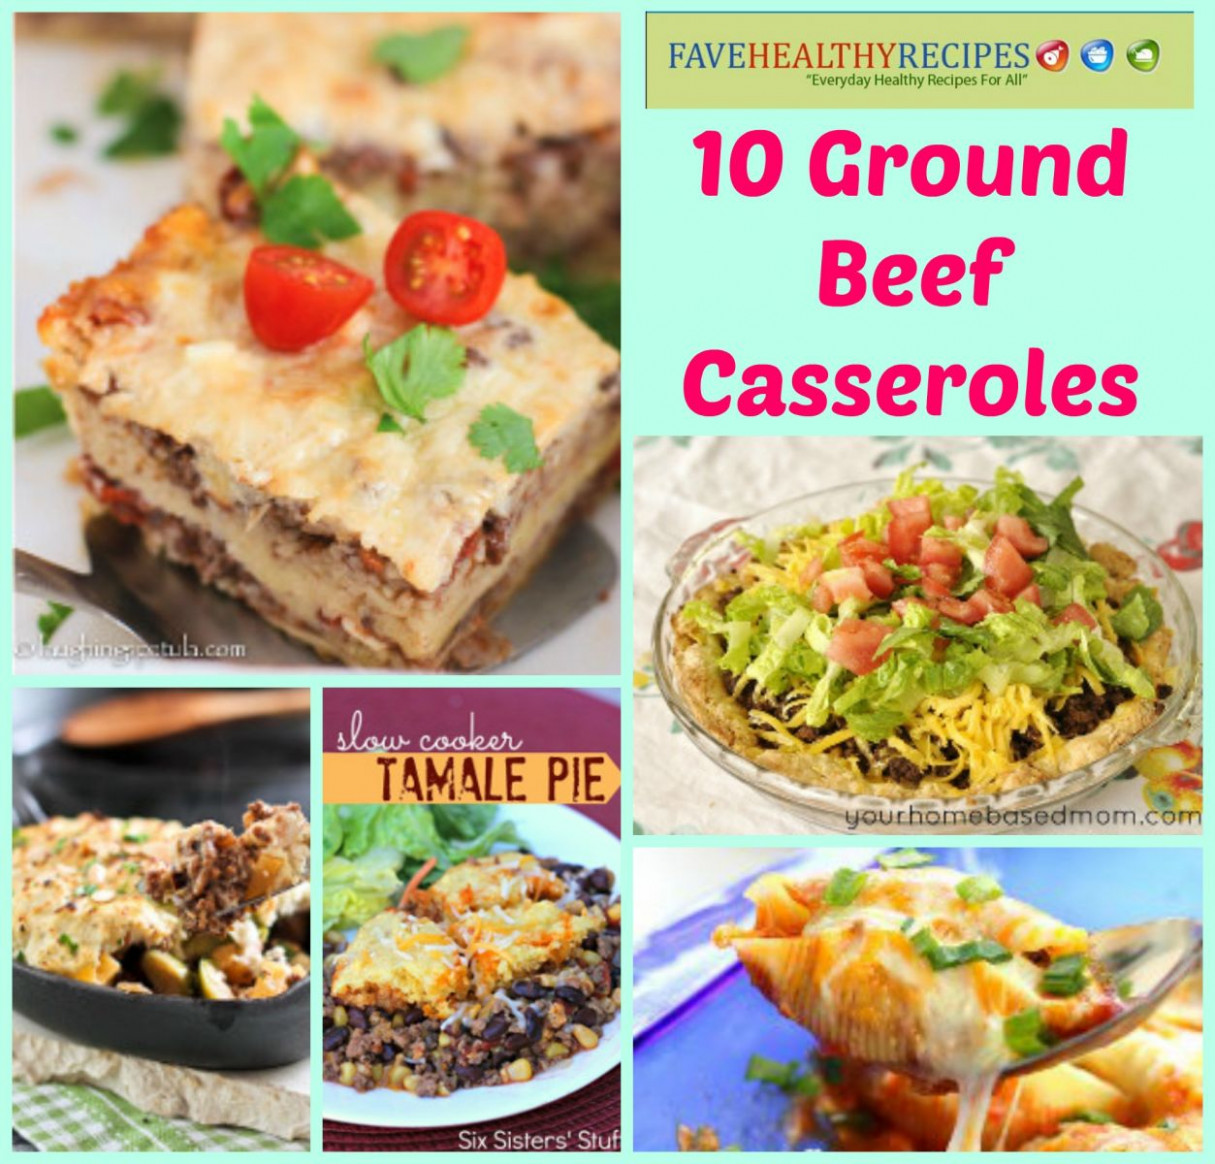 15 Savory Ground Beef Casserole Recipes | FaveHealthyRecipes